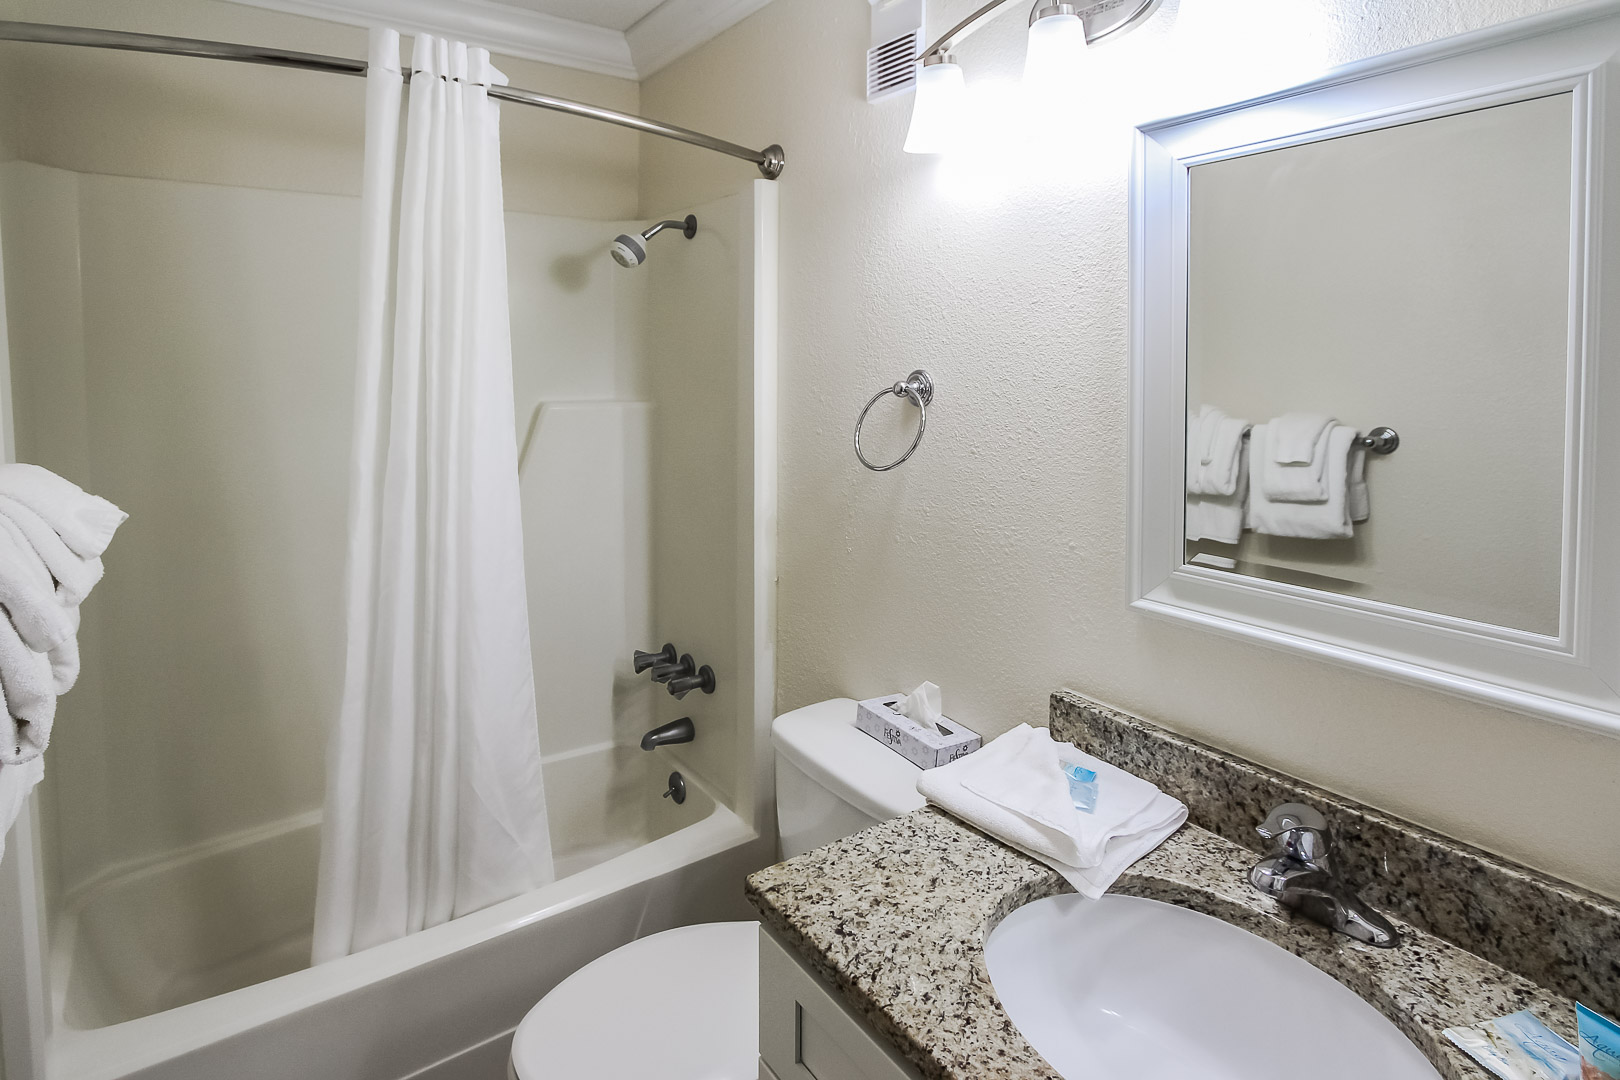 A refreshing bathroom at VRI's A Place at the Beach III in North Carolina